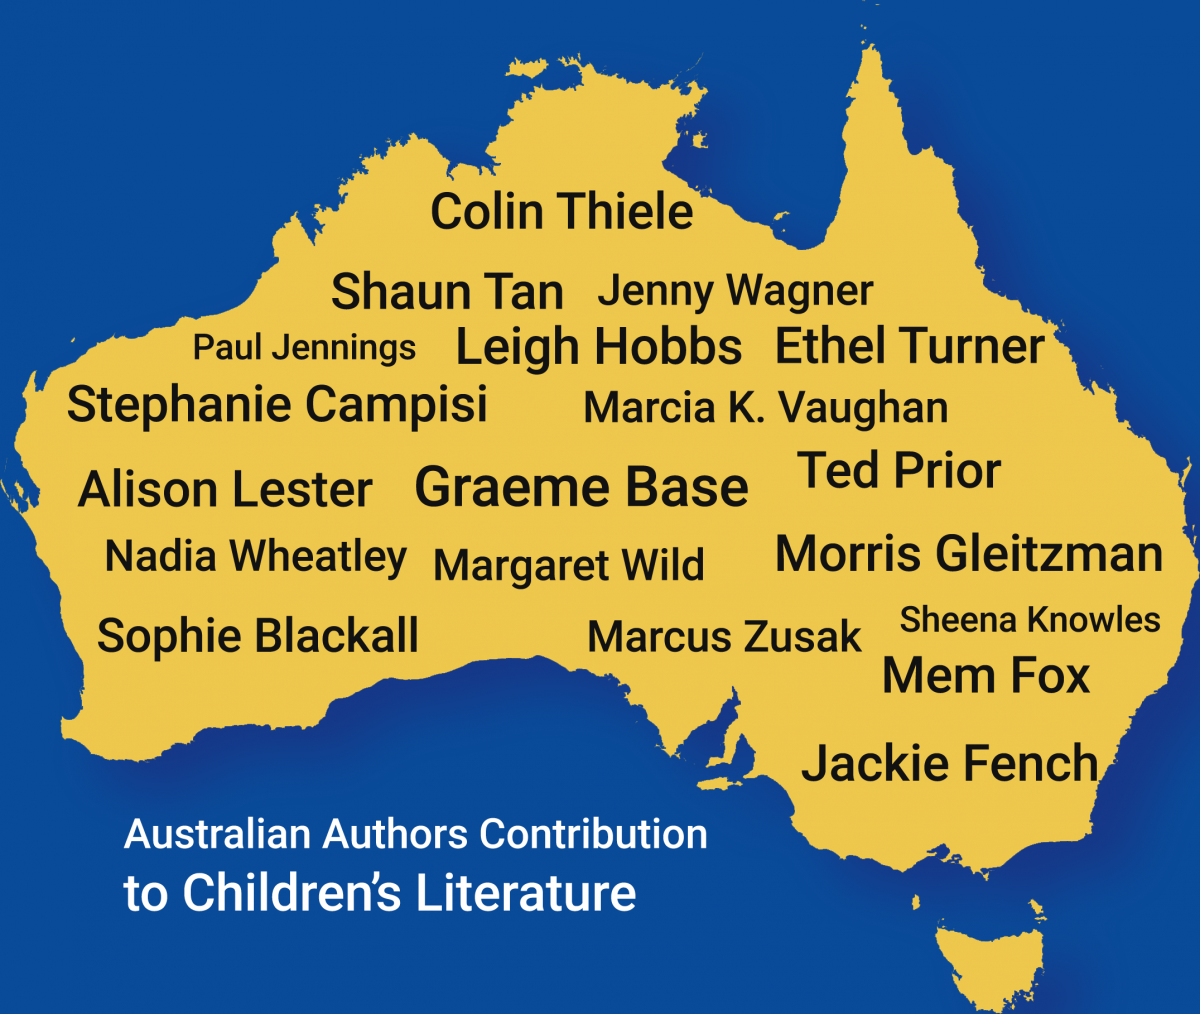 AustralianAuthors